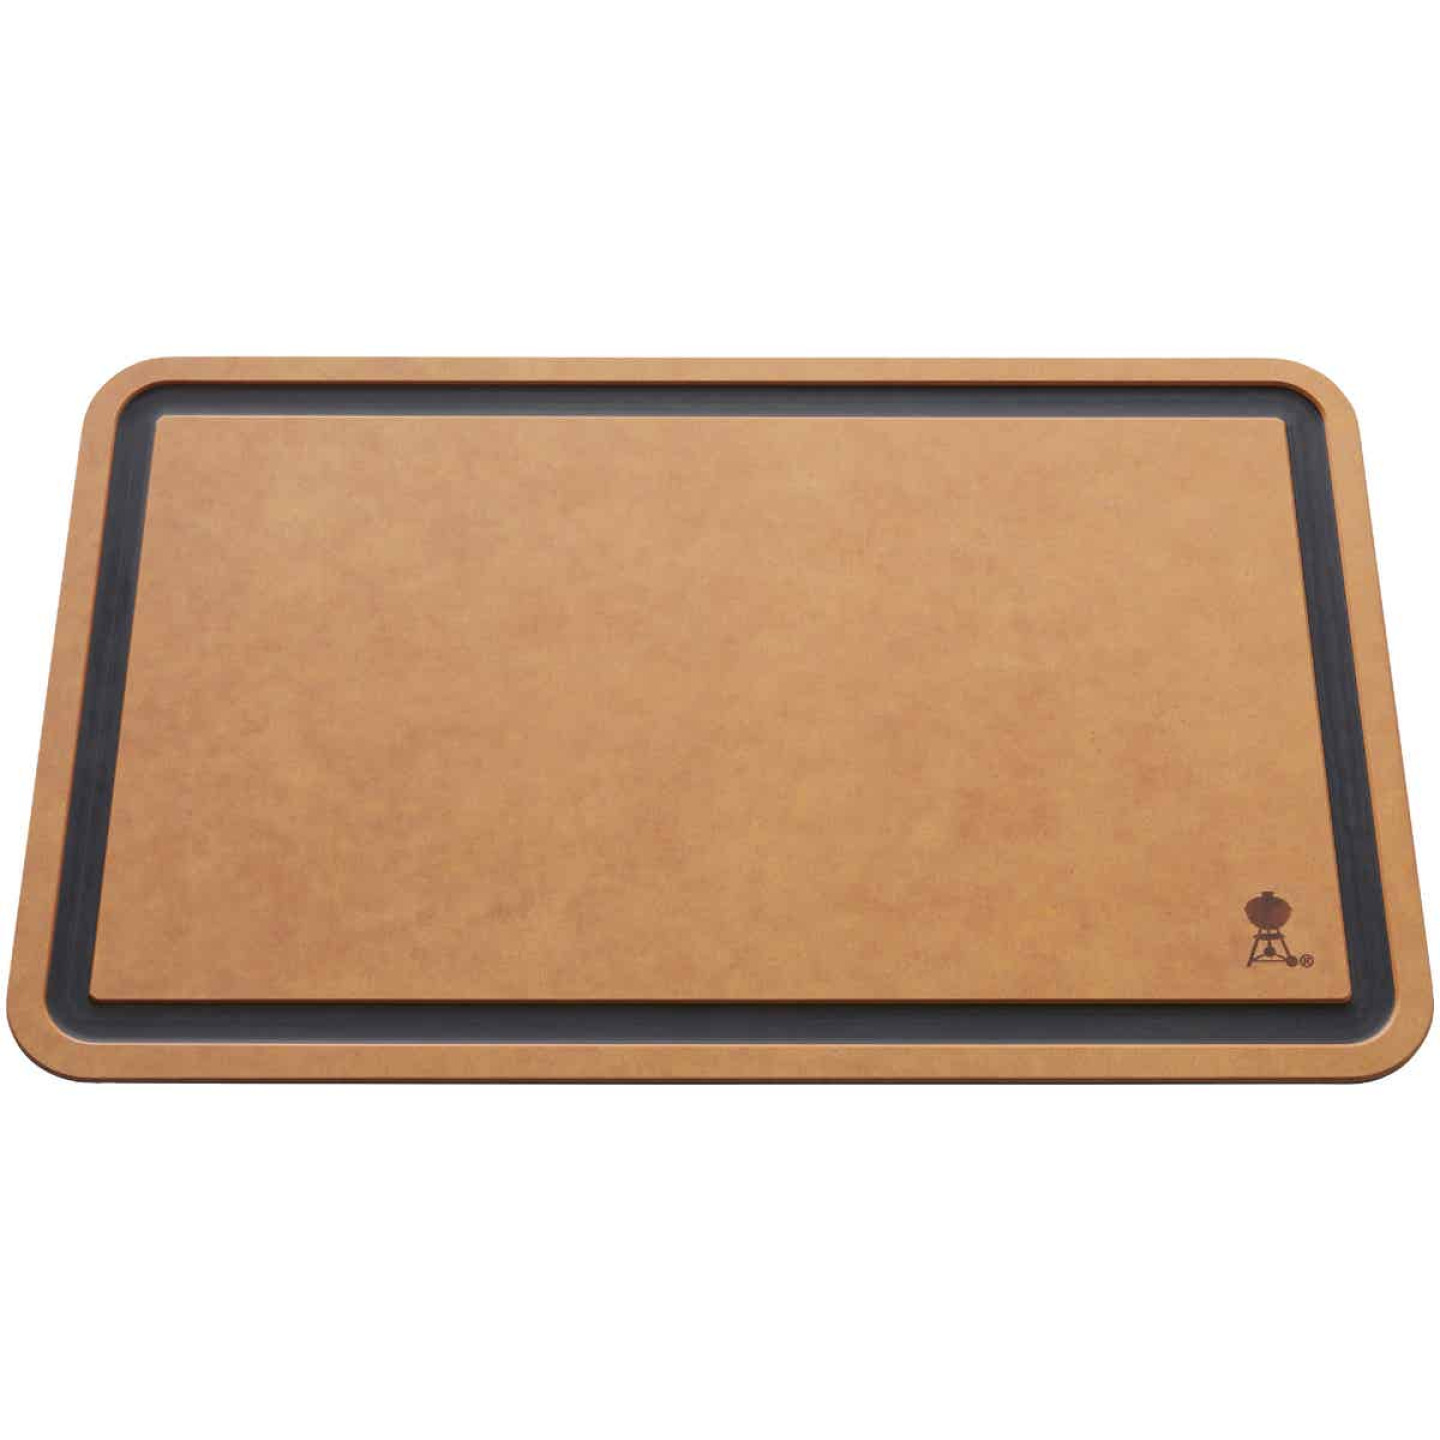 Weber 17.72 In. W. x 10.75 In. L. Cutting Board Image 1